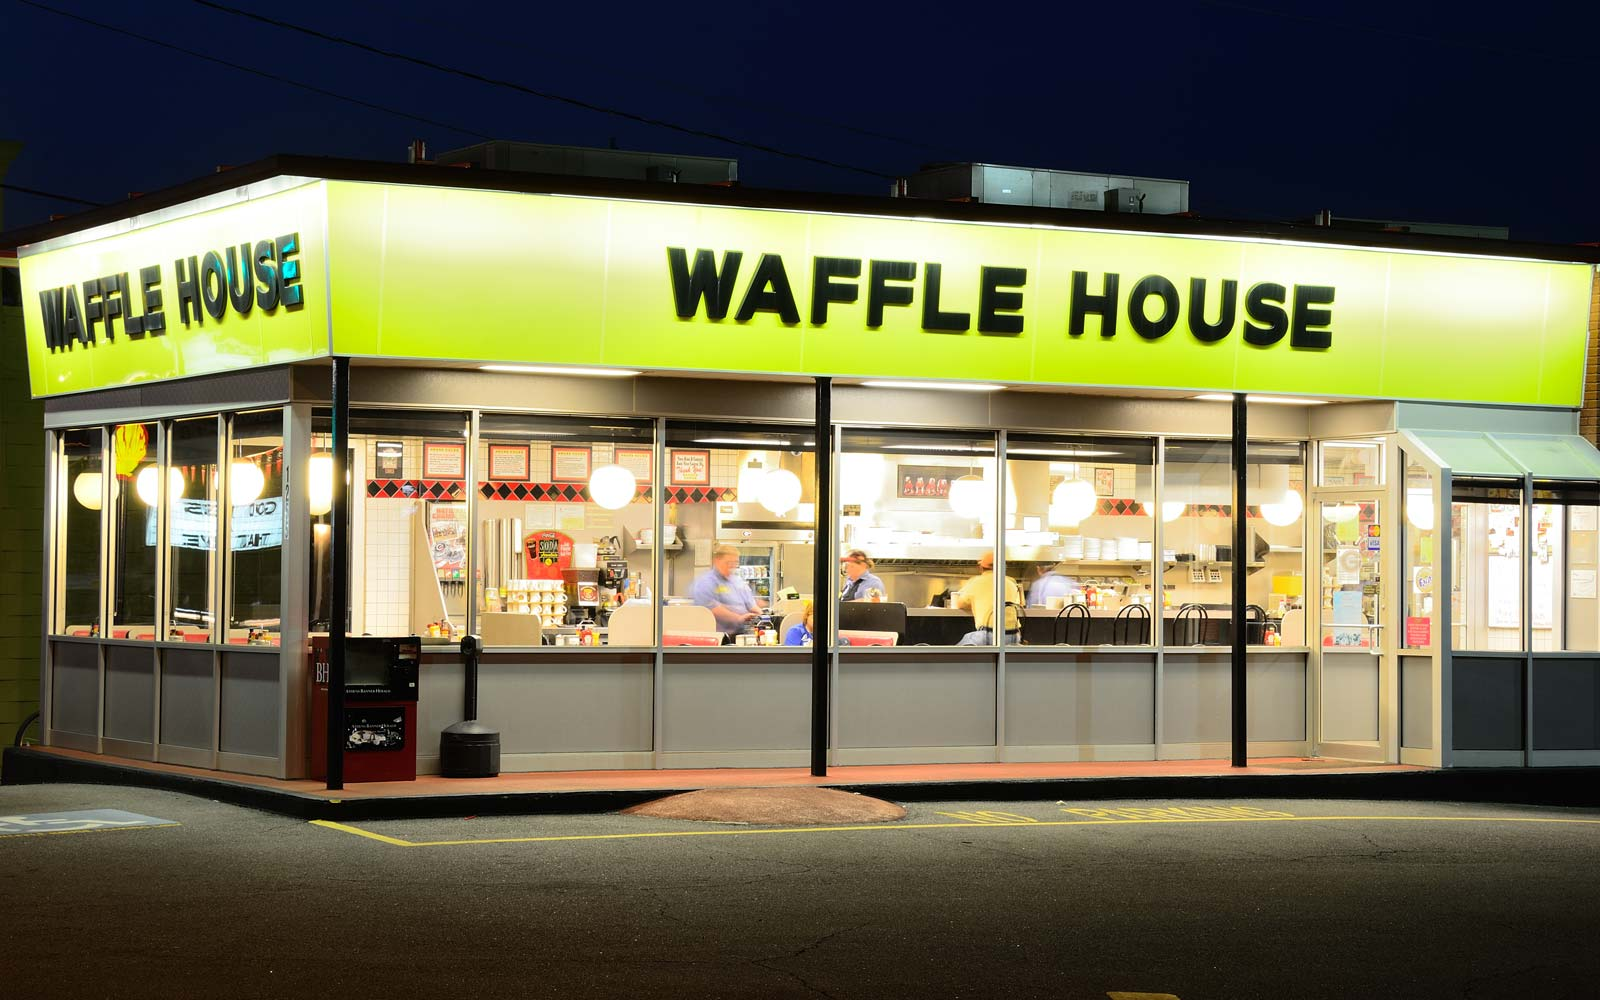 You Can Have a Candlelit Date at Waffle House for Valentine's Day This Year